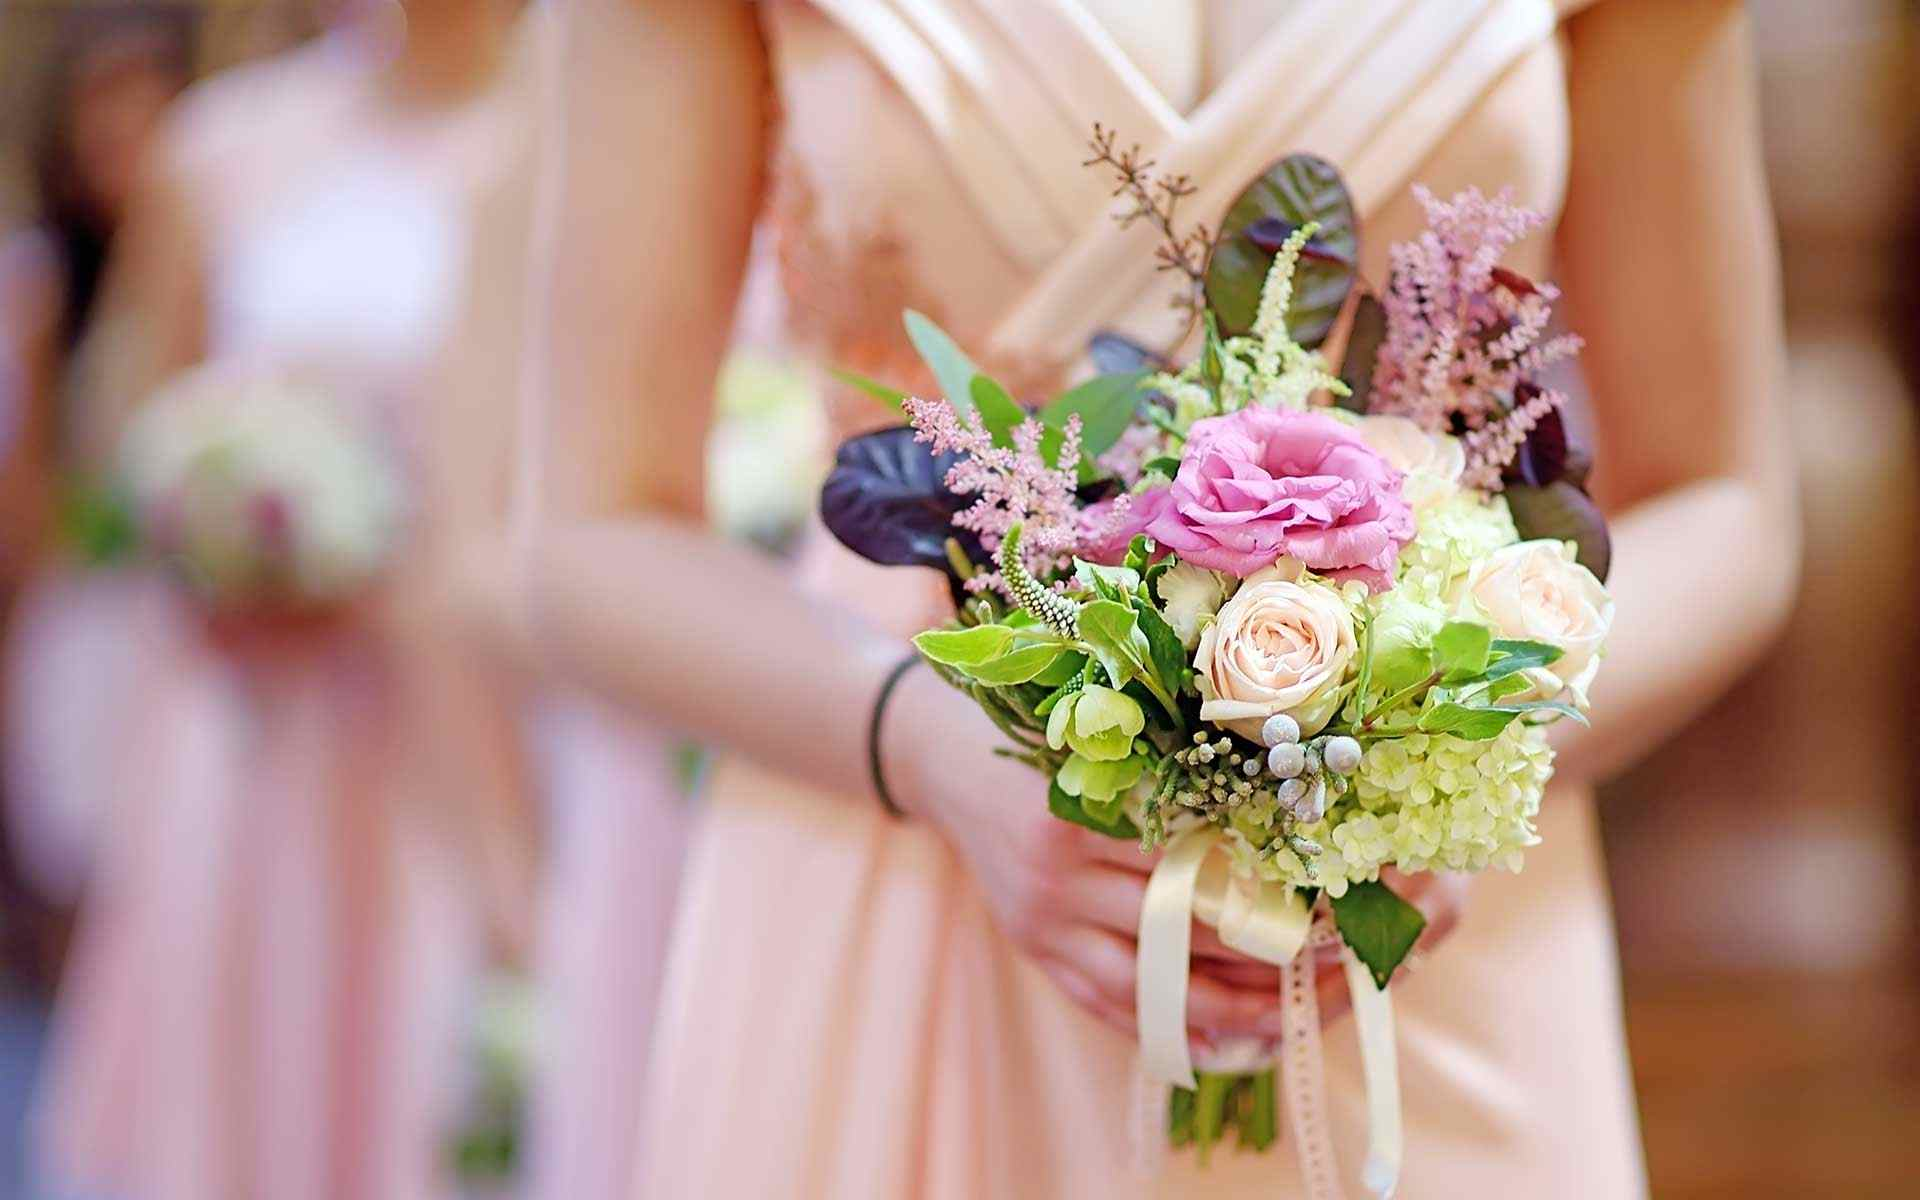 This-Bouquets-Exudes-Romance-And-Elegance-With-A-Pop-Of-Fun-And-Chic-Flair